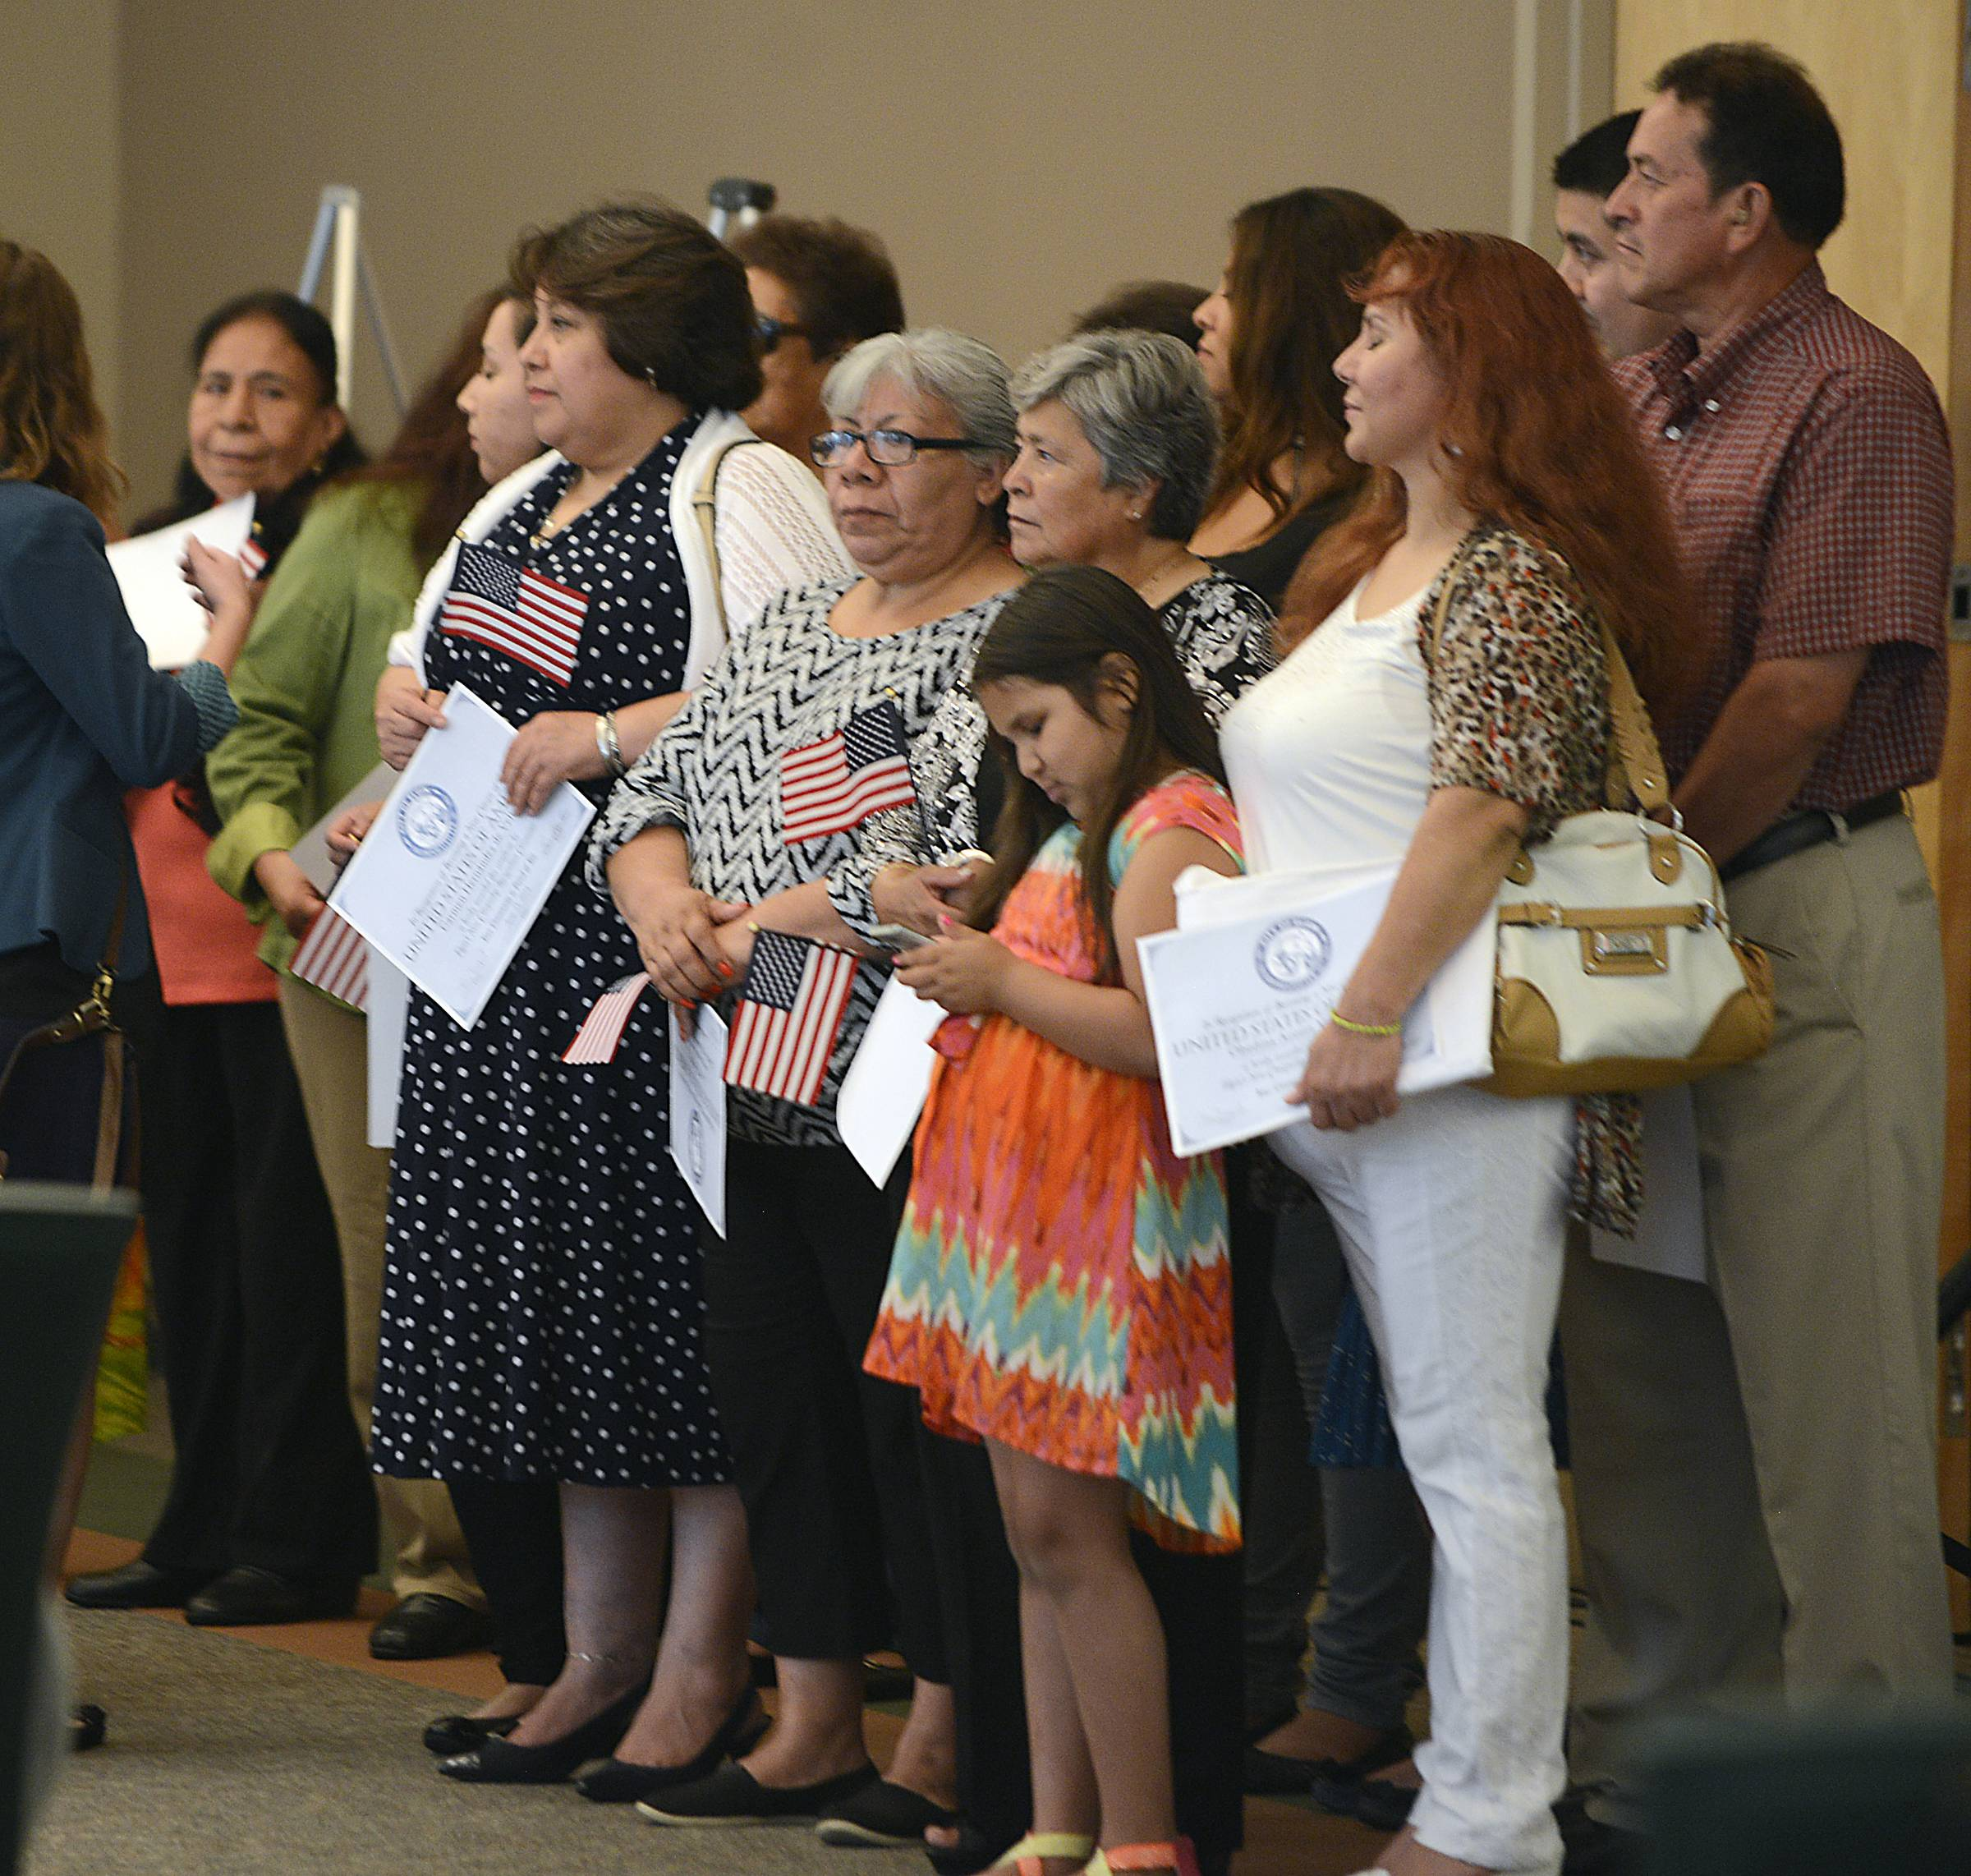 The U.S. citizens honored in Elgin Wednesday night came from countries including Peru, Honduras, Colombia, Guatemala, Macedonia, Laos, the Philippines and Thailand.